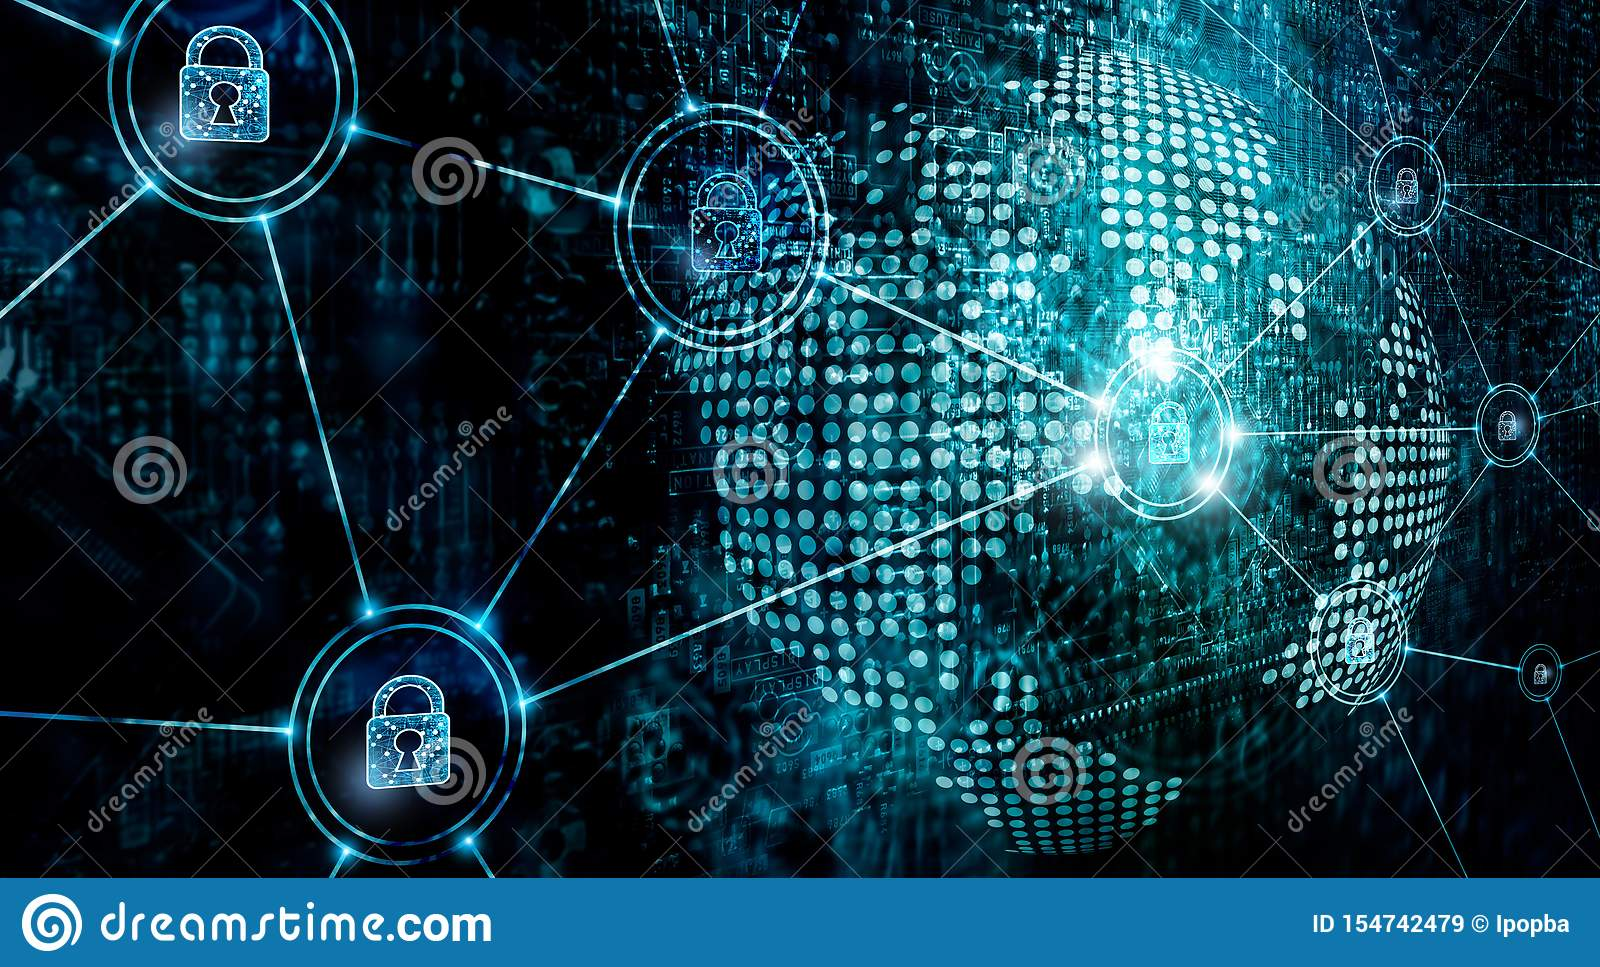 Cybersecurity On Global Network Information Technology